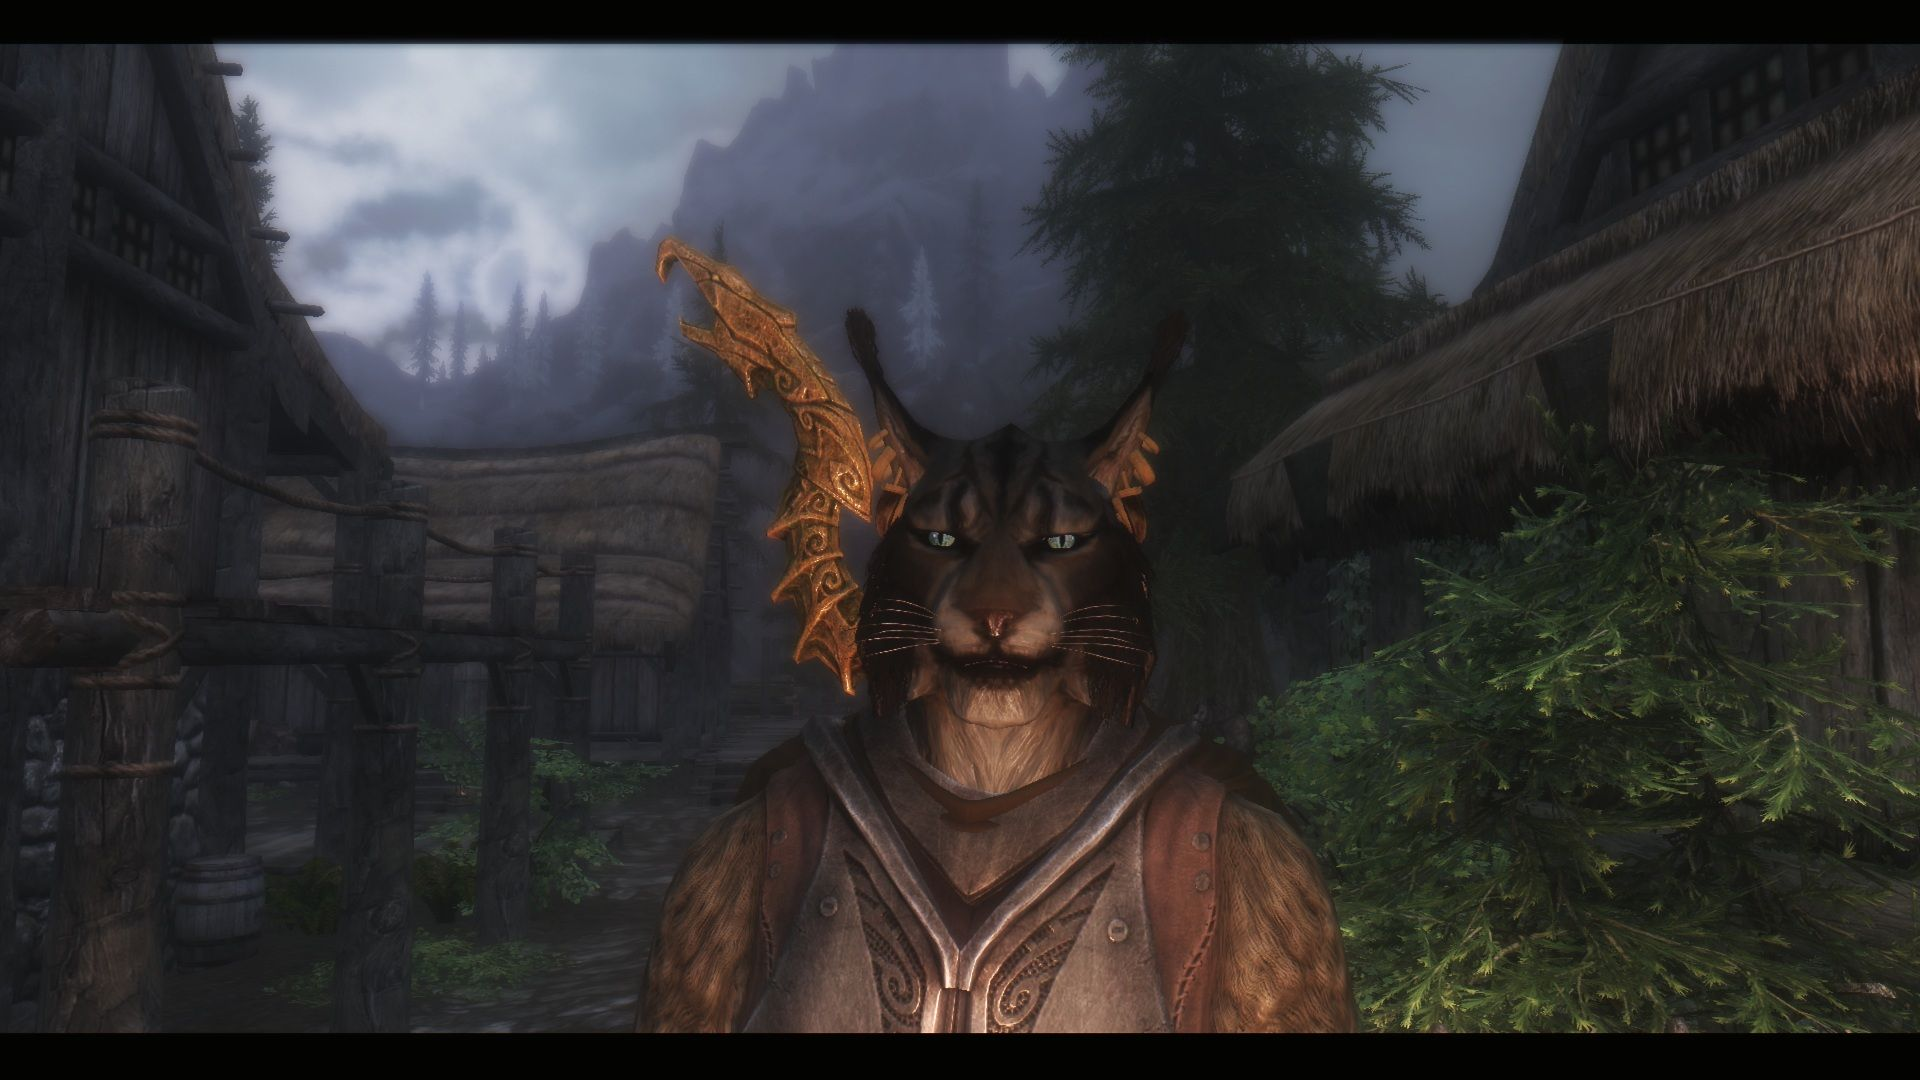 skyrim khajiit | Dosha-Khajiit-Trainer-Follower at Skyrim